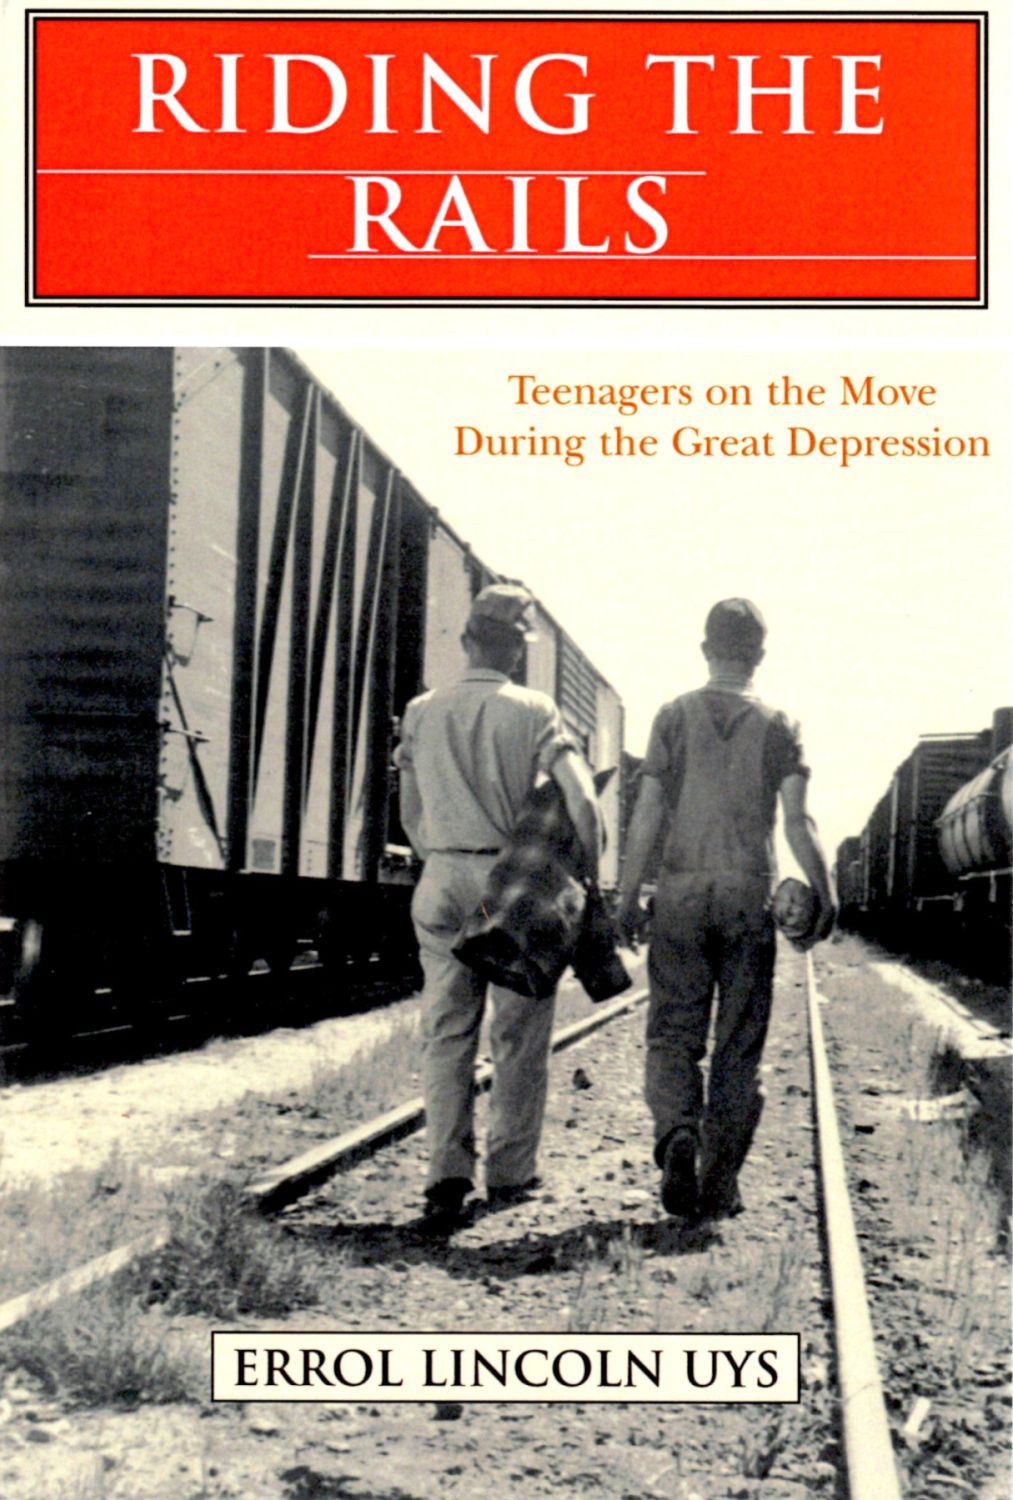 Riding the Rails | Teenagers on the Move During the Great